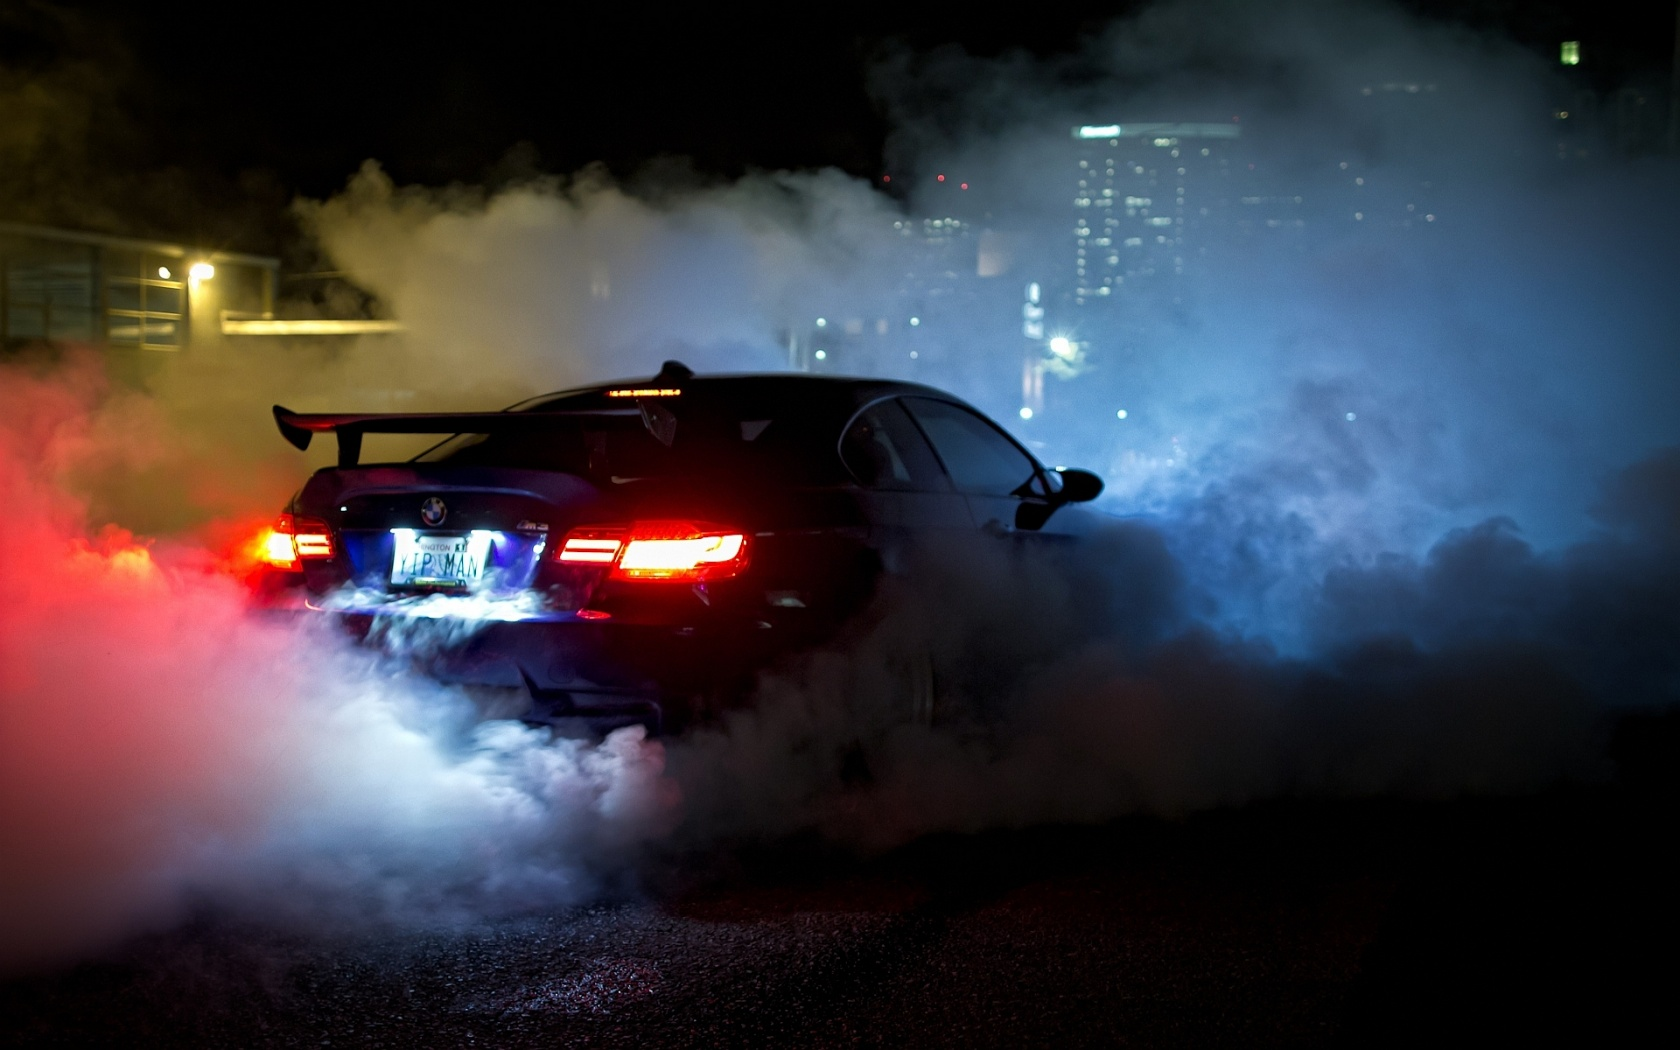 Bmw m3 e92 burnout Wallpaper in 1680x1050 Widescreen